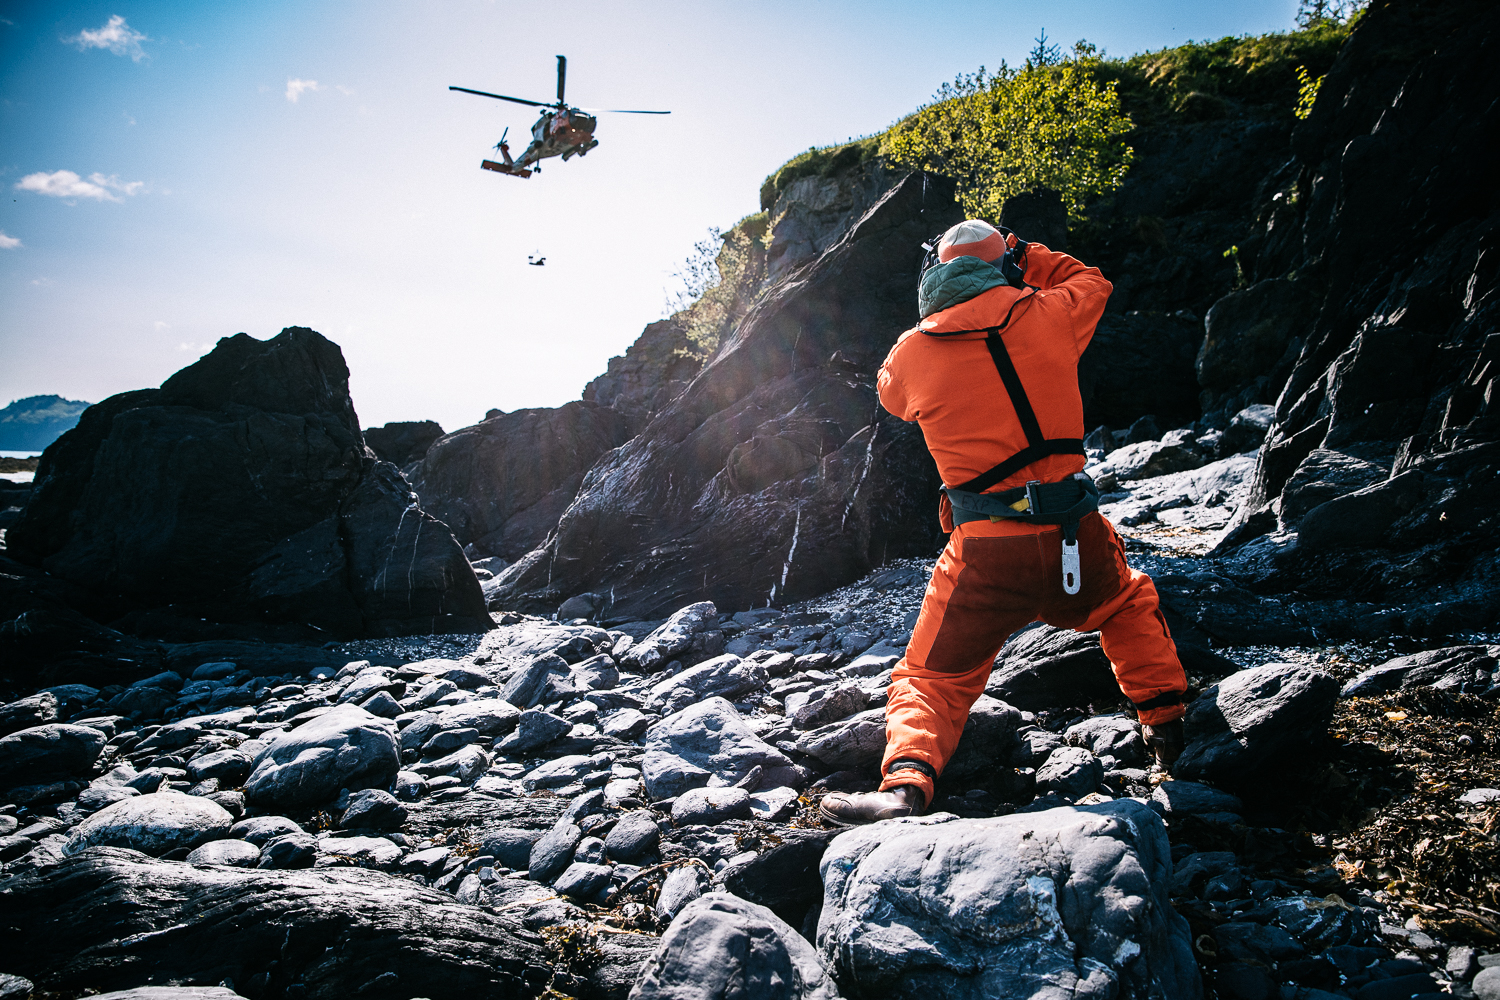 Justin Bastien is shooting the Coast Guard for Red Bullet Magazine.